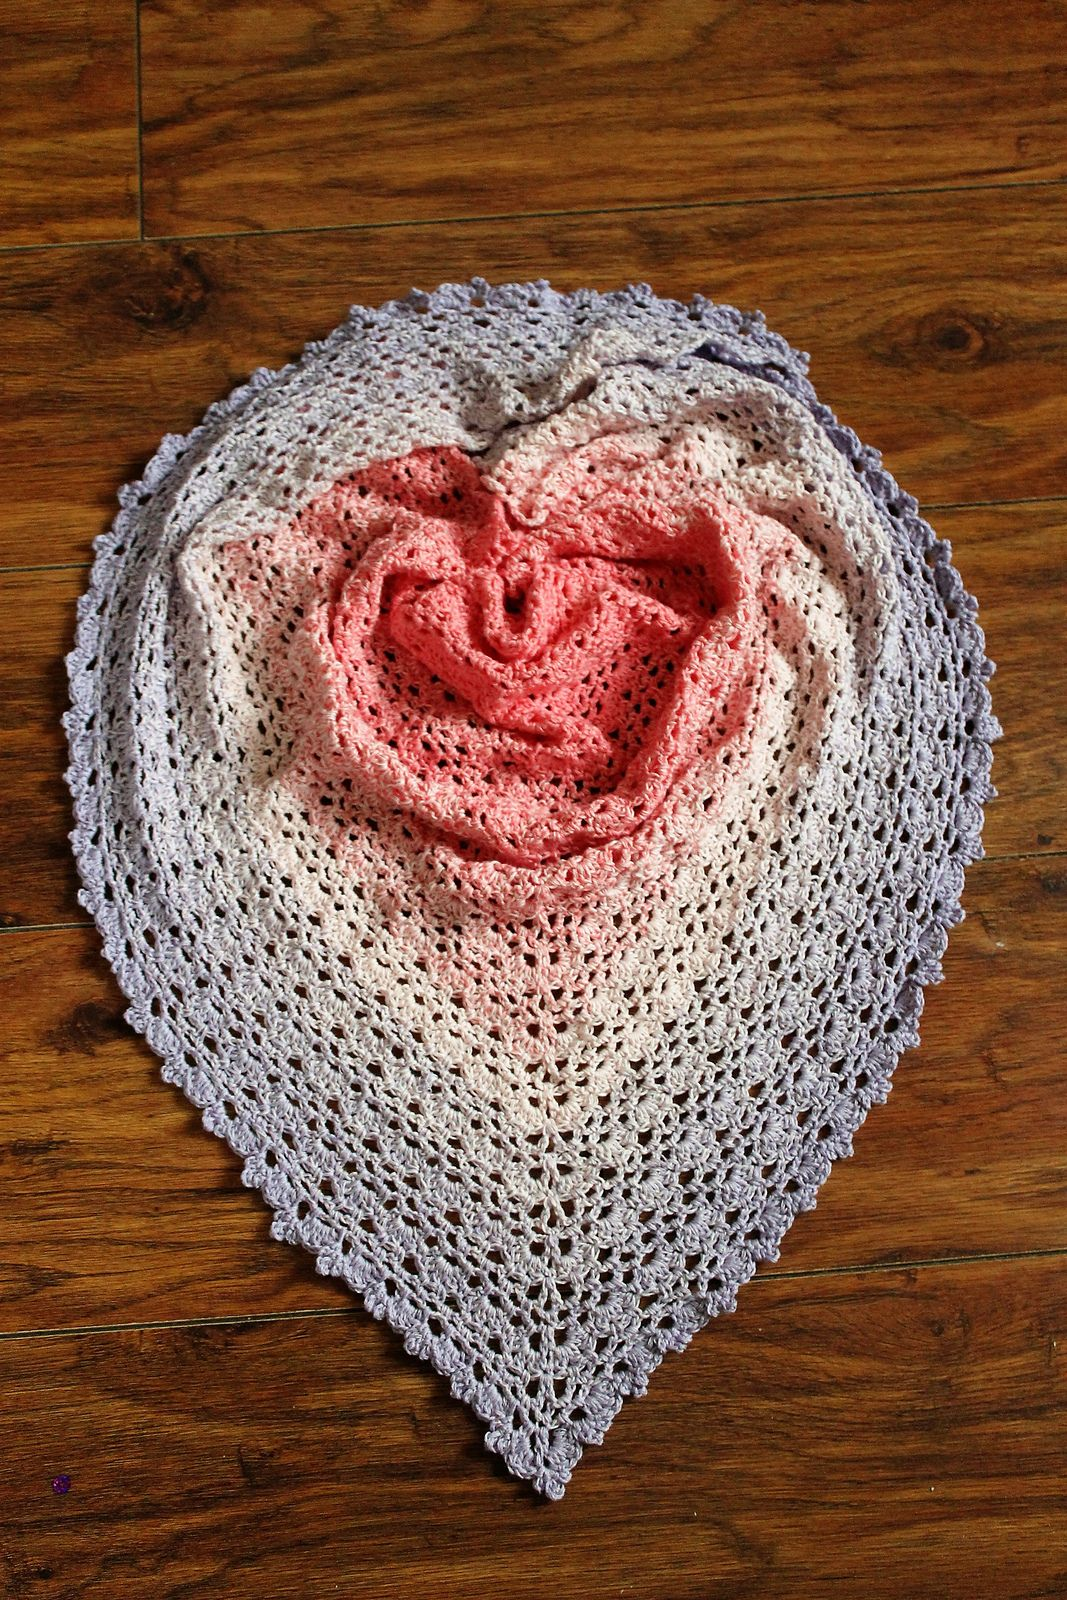 Ravelry: Honey Blossoms Shawl by Jinty Lyons | crocheting ...